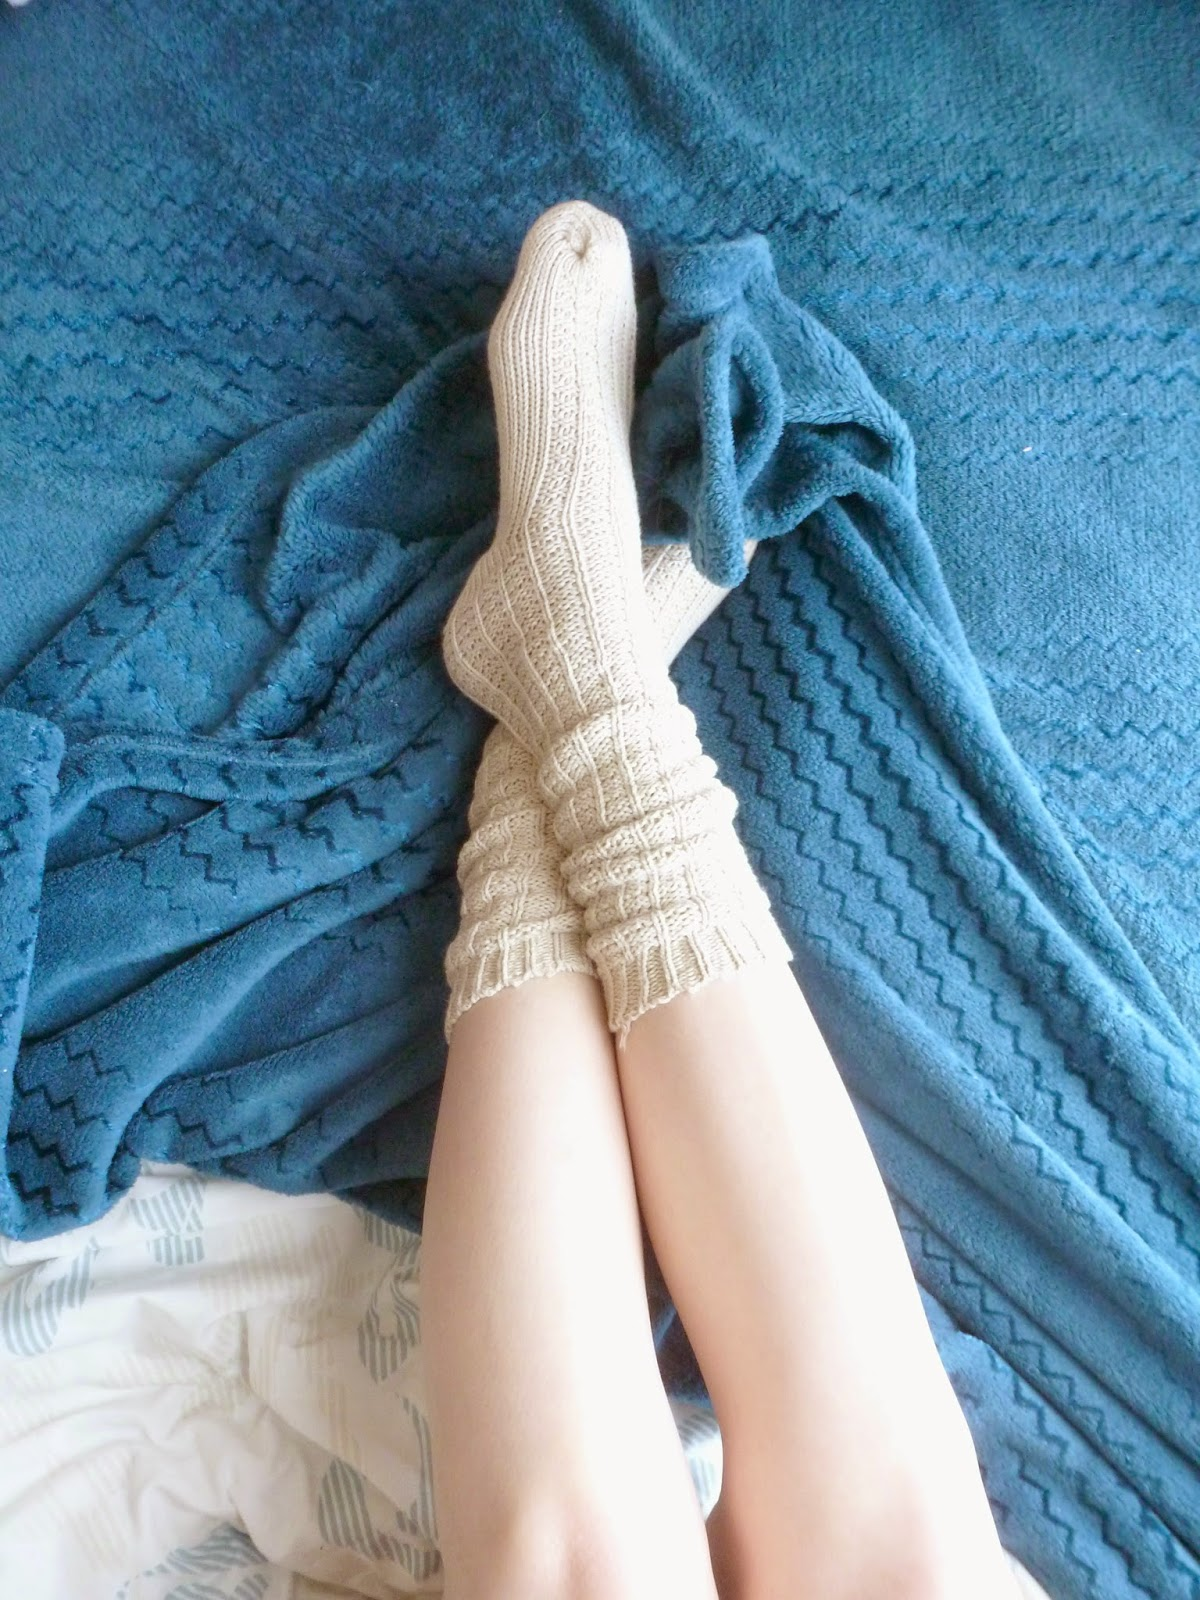 Shot of legs with cosy socks and fluffy blue blanket on a bed